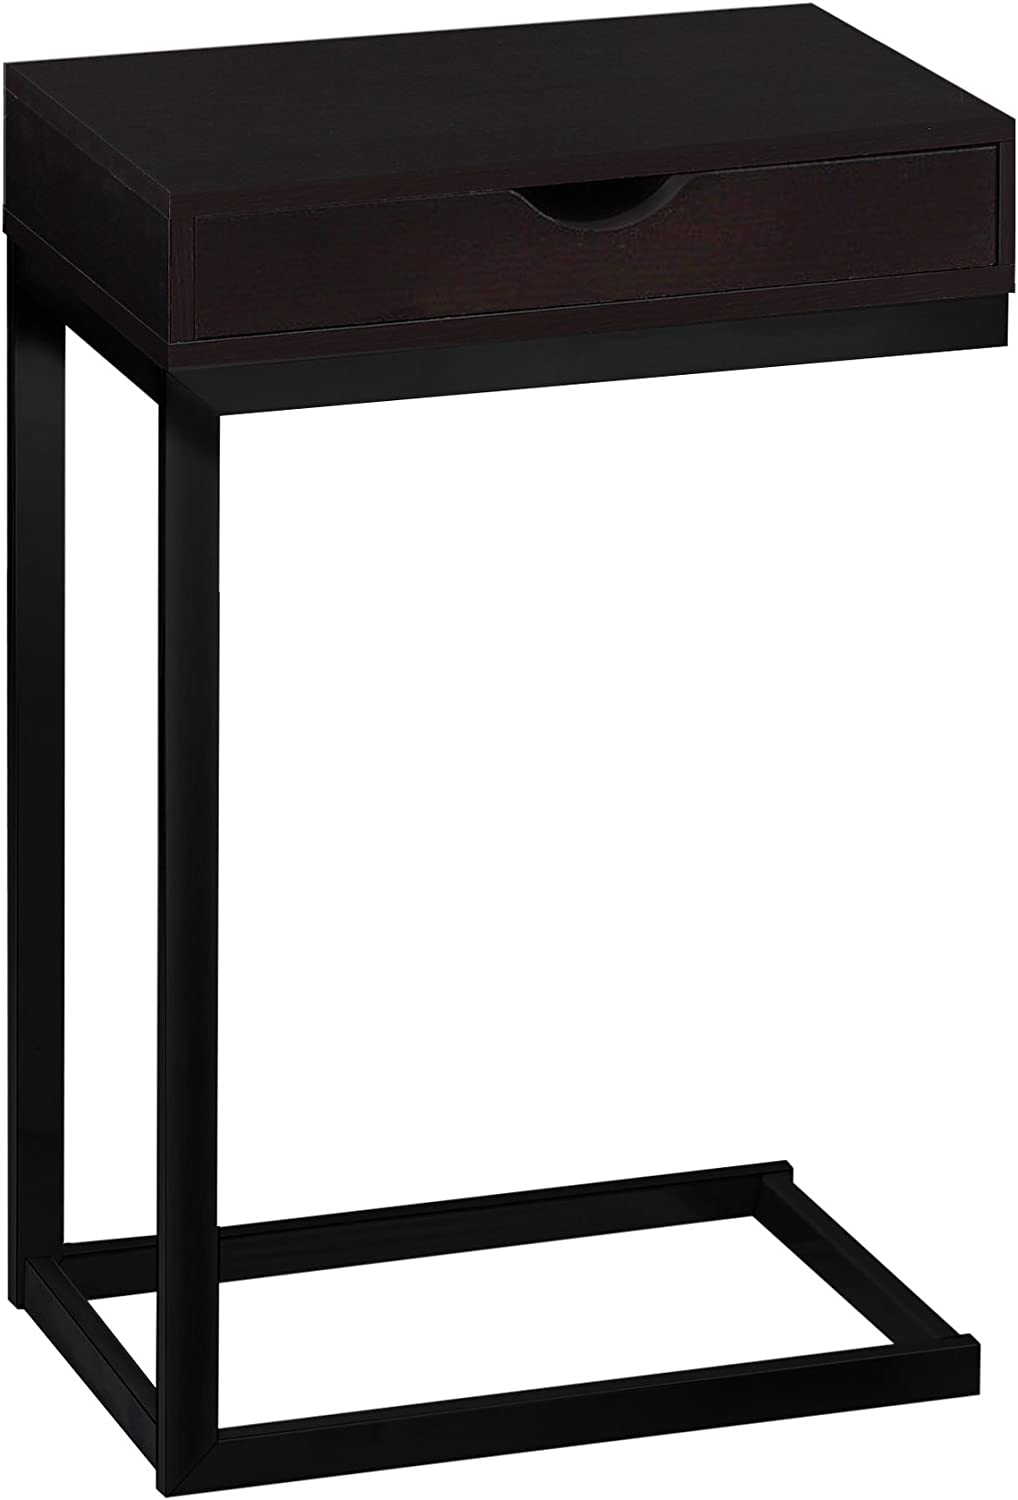 Monarch Specialties I 3069 Black Metal with A Drawer Accent Table, Cappuccino